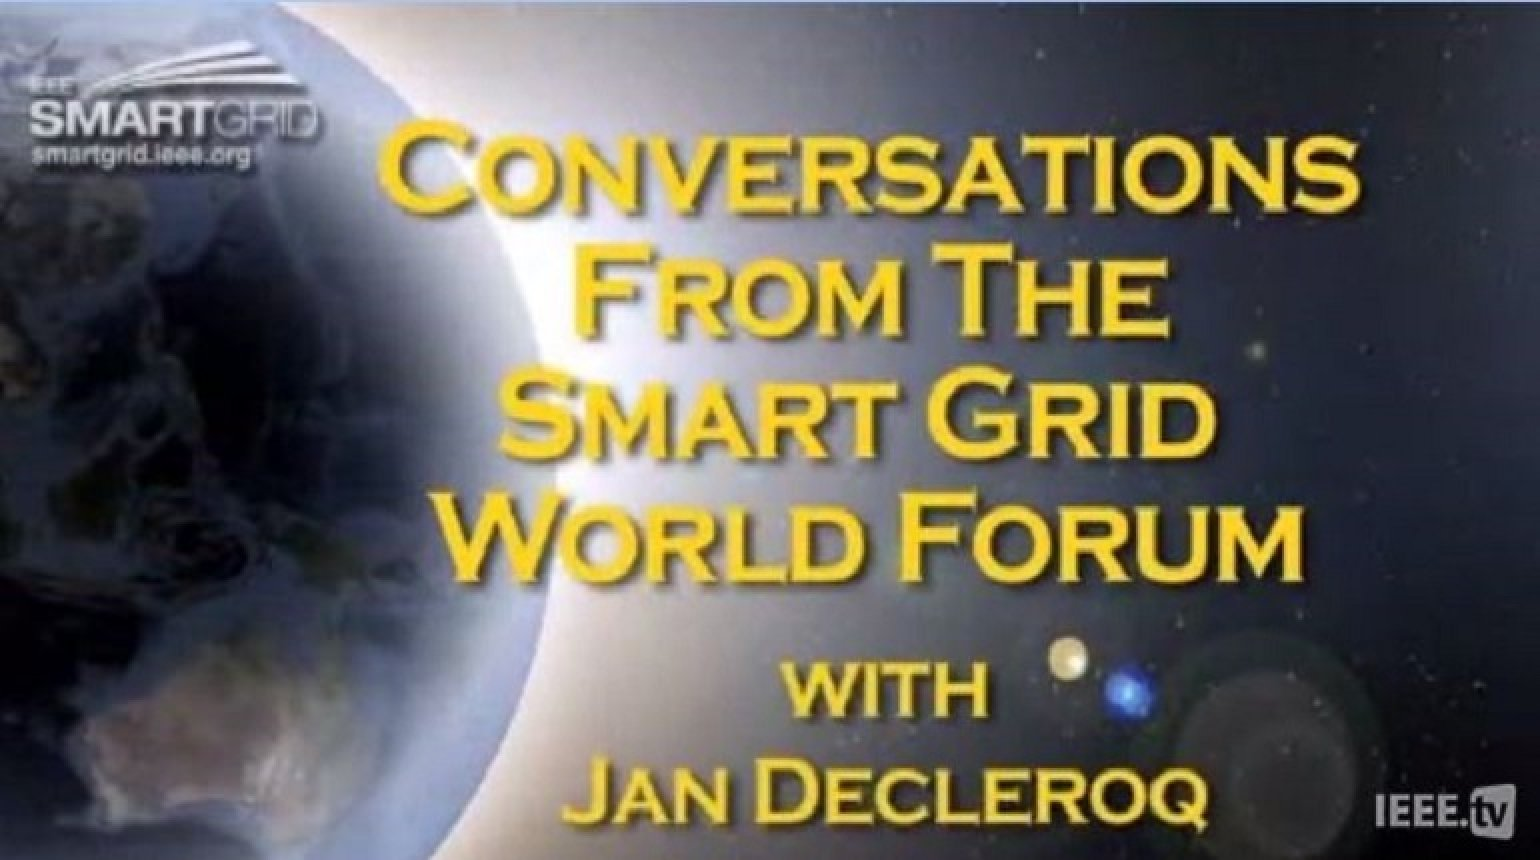 Systems and Security for the Smart Grid: Jan Declercq